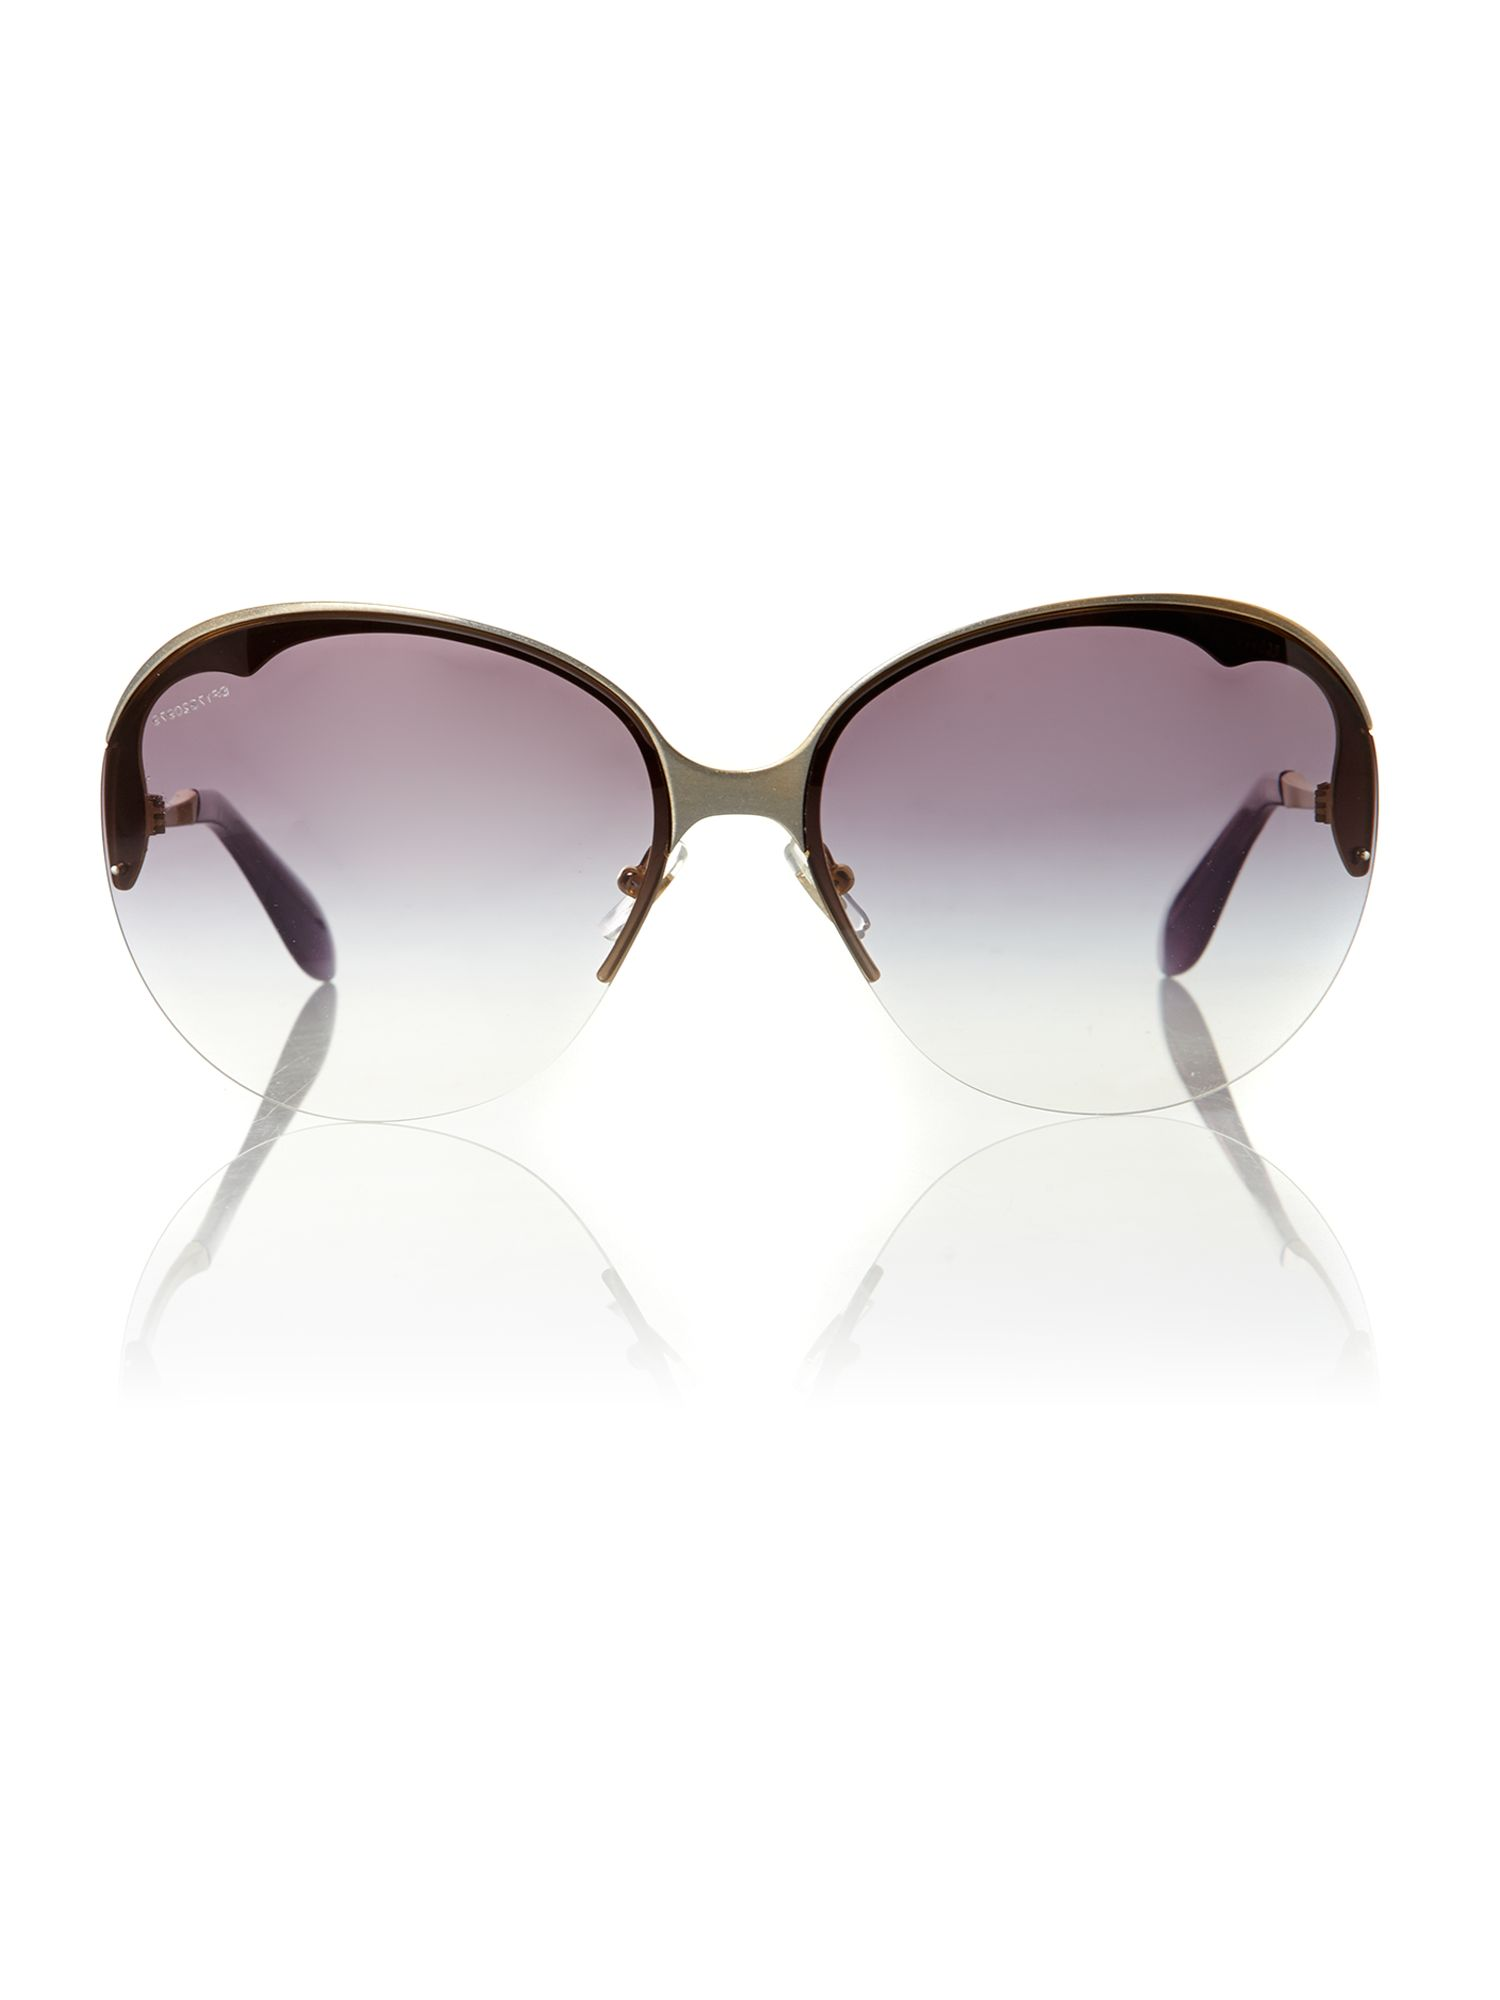 Ladies MU51OS silver metal sunglasses